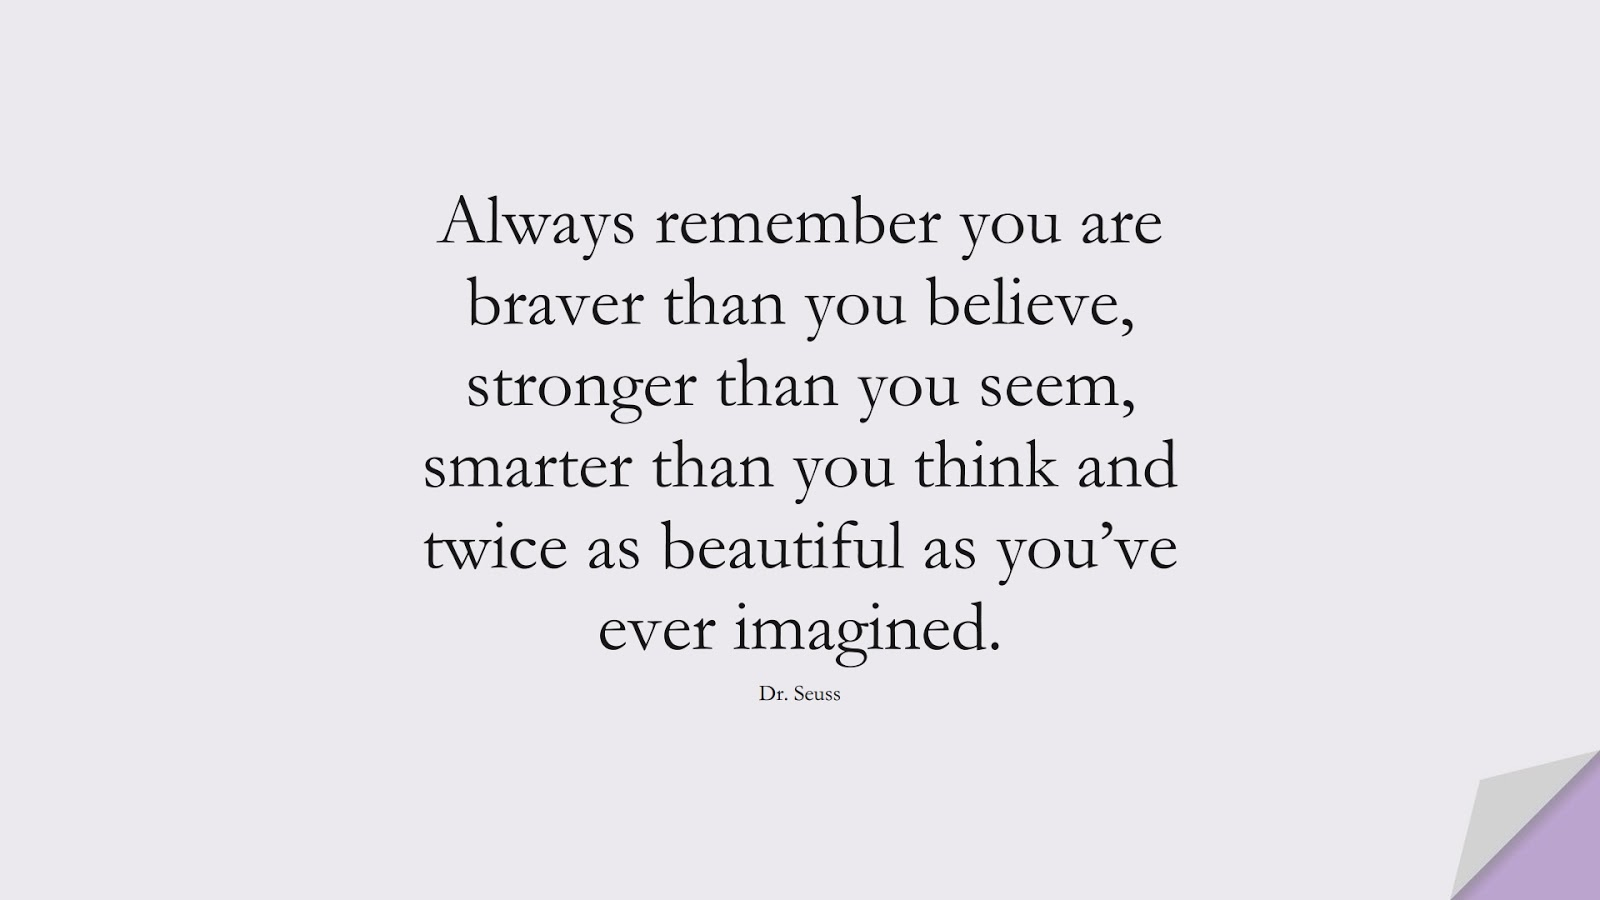 Always remember you are braver than you believe, stronger than you seem, smarter than you think and twice as beautiful as you've ever imagined. (Dr. Seuss);  #MotivationalQuotes